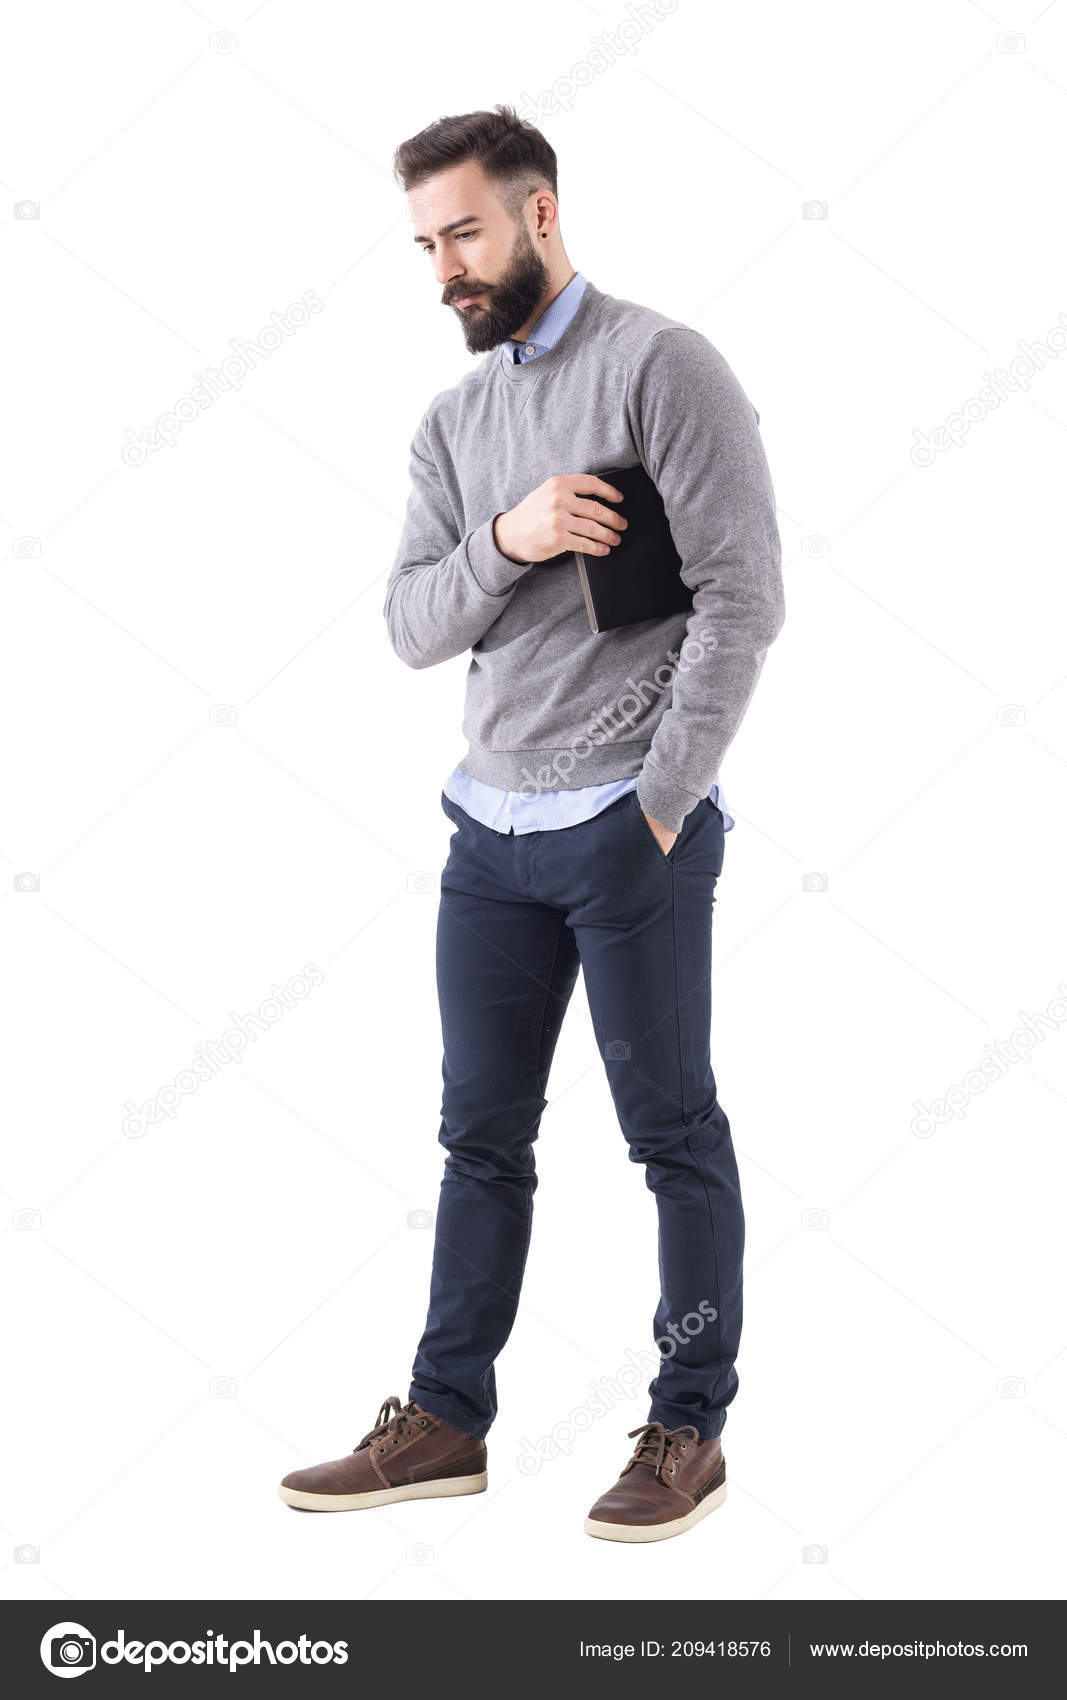 7c6666e25e Serious thoughtful business man carry notebook under the arm and looking  down. Full body length portrait isolated on white studio background.